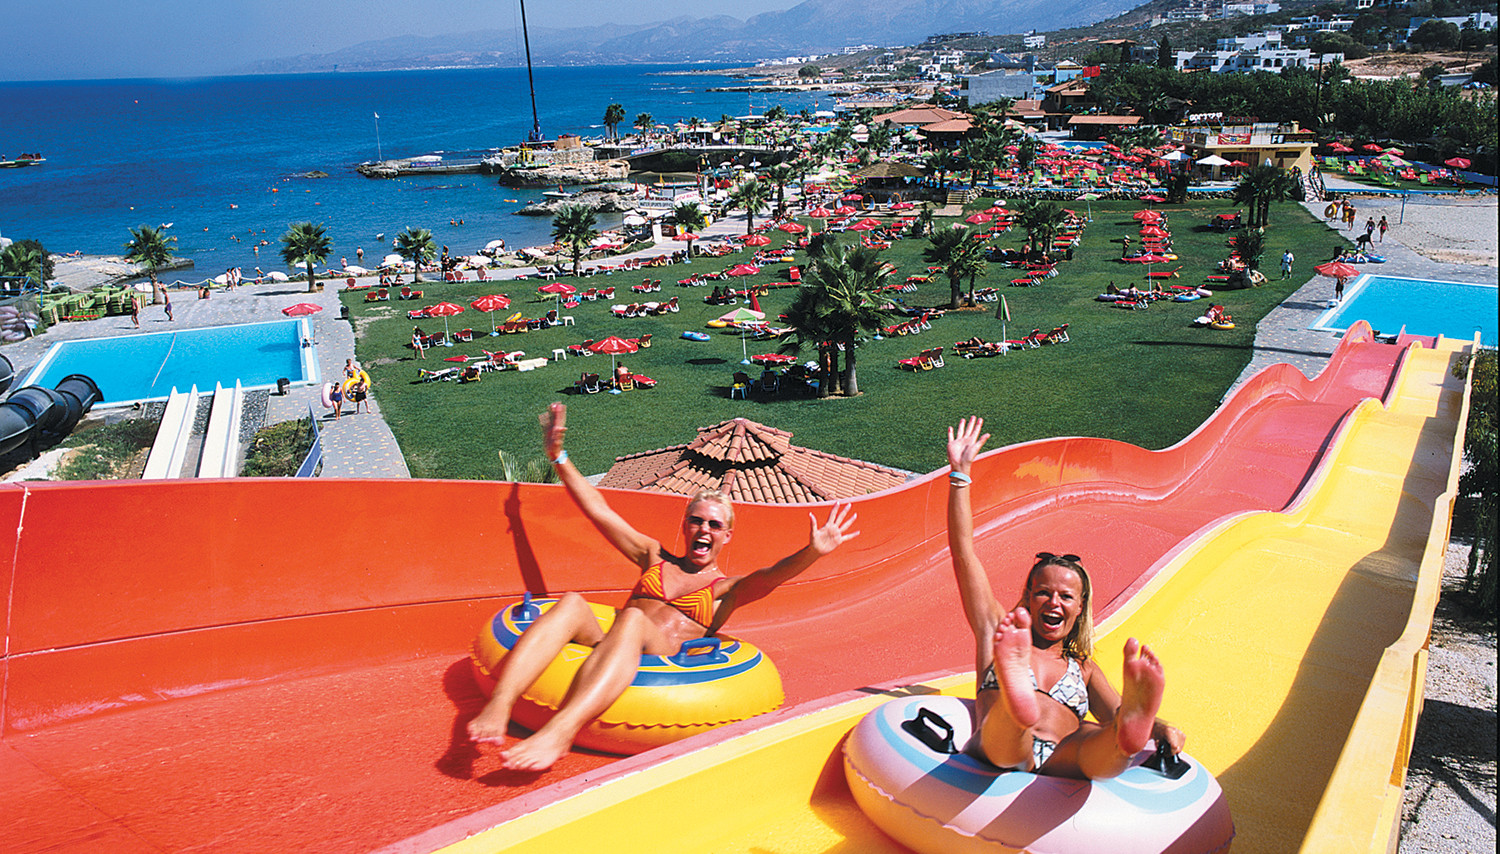 Star Beach Village & Waterpark (Krēta, Grieķija)